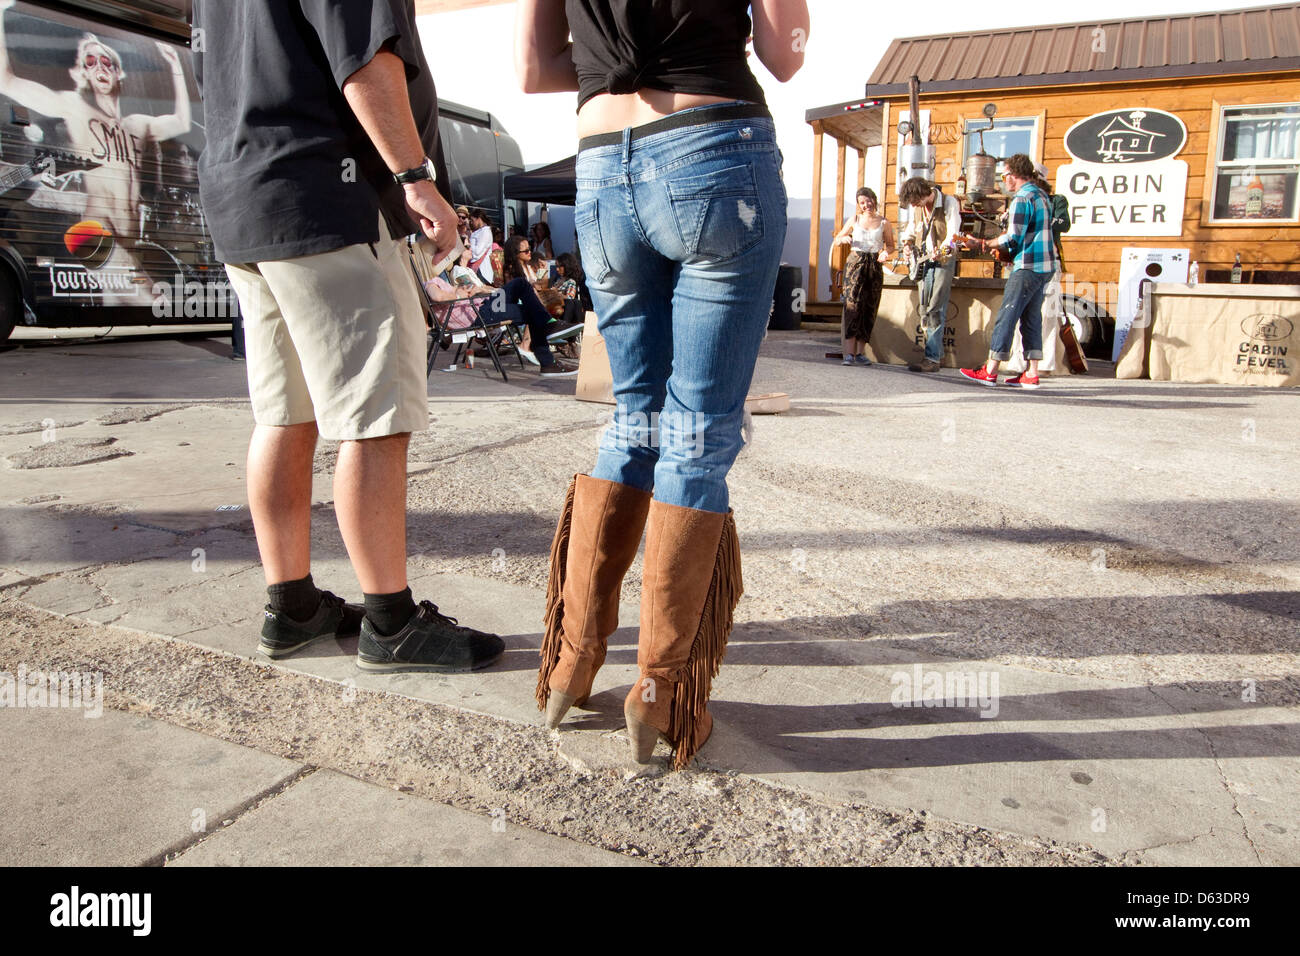 Couple With Female Wearing Jeans And Cowboy Boots Listen To Music At